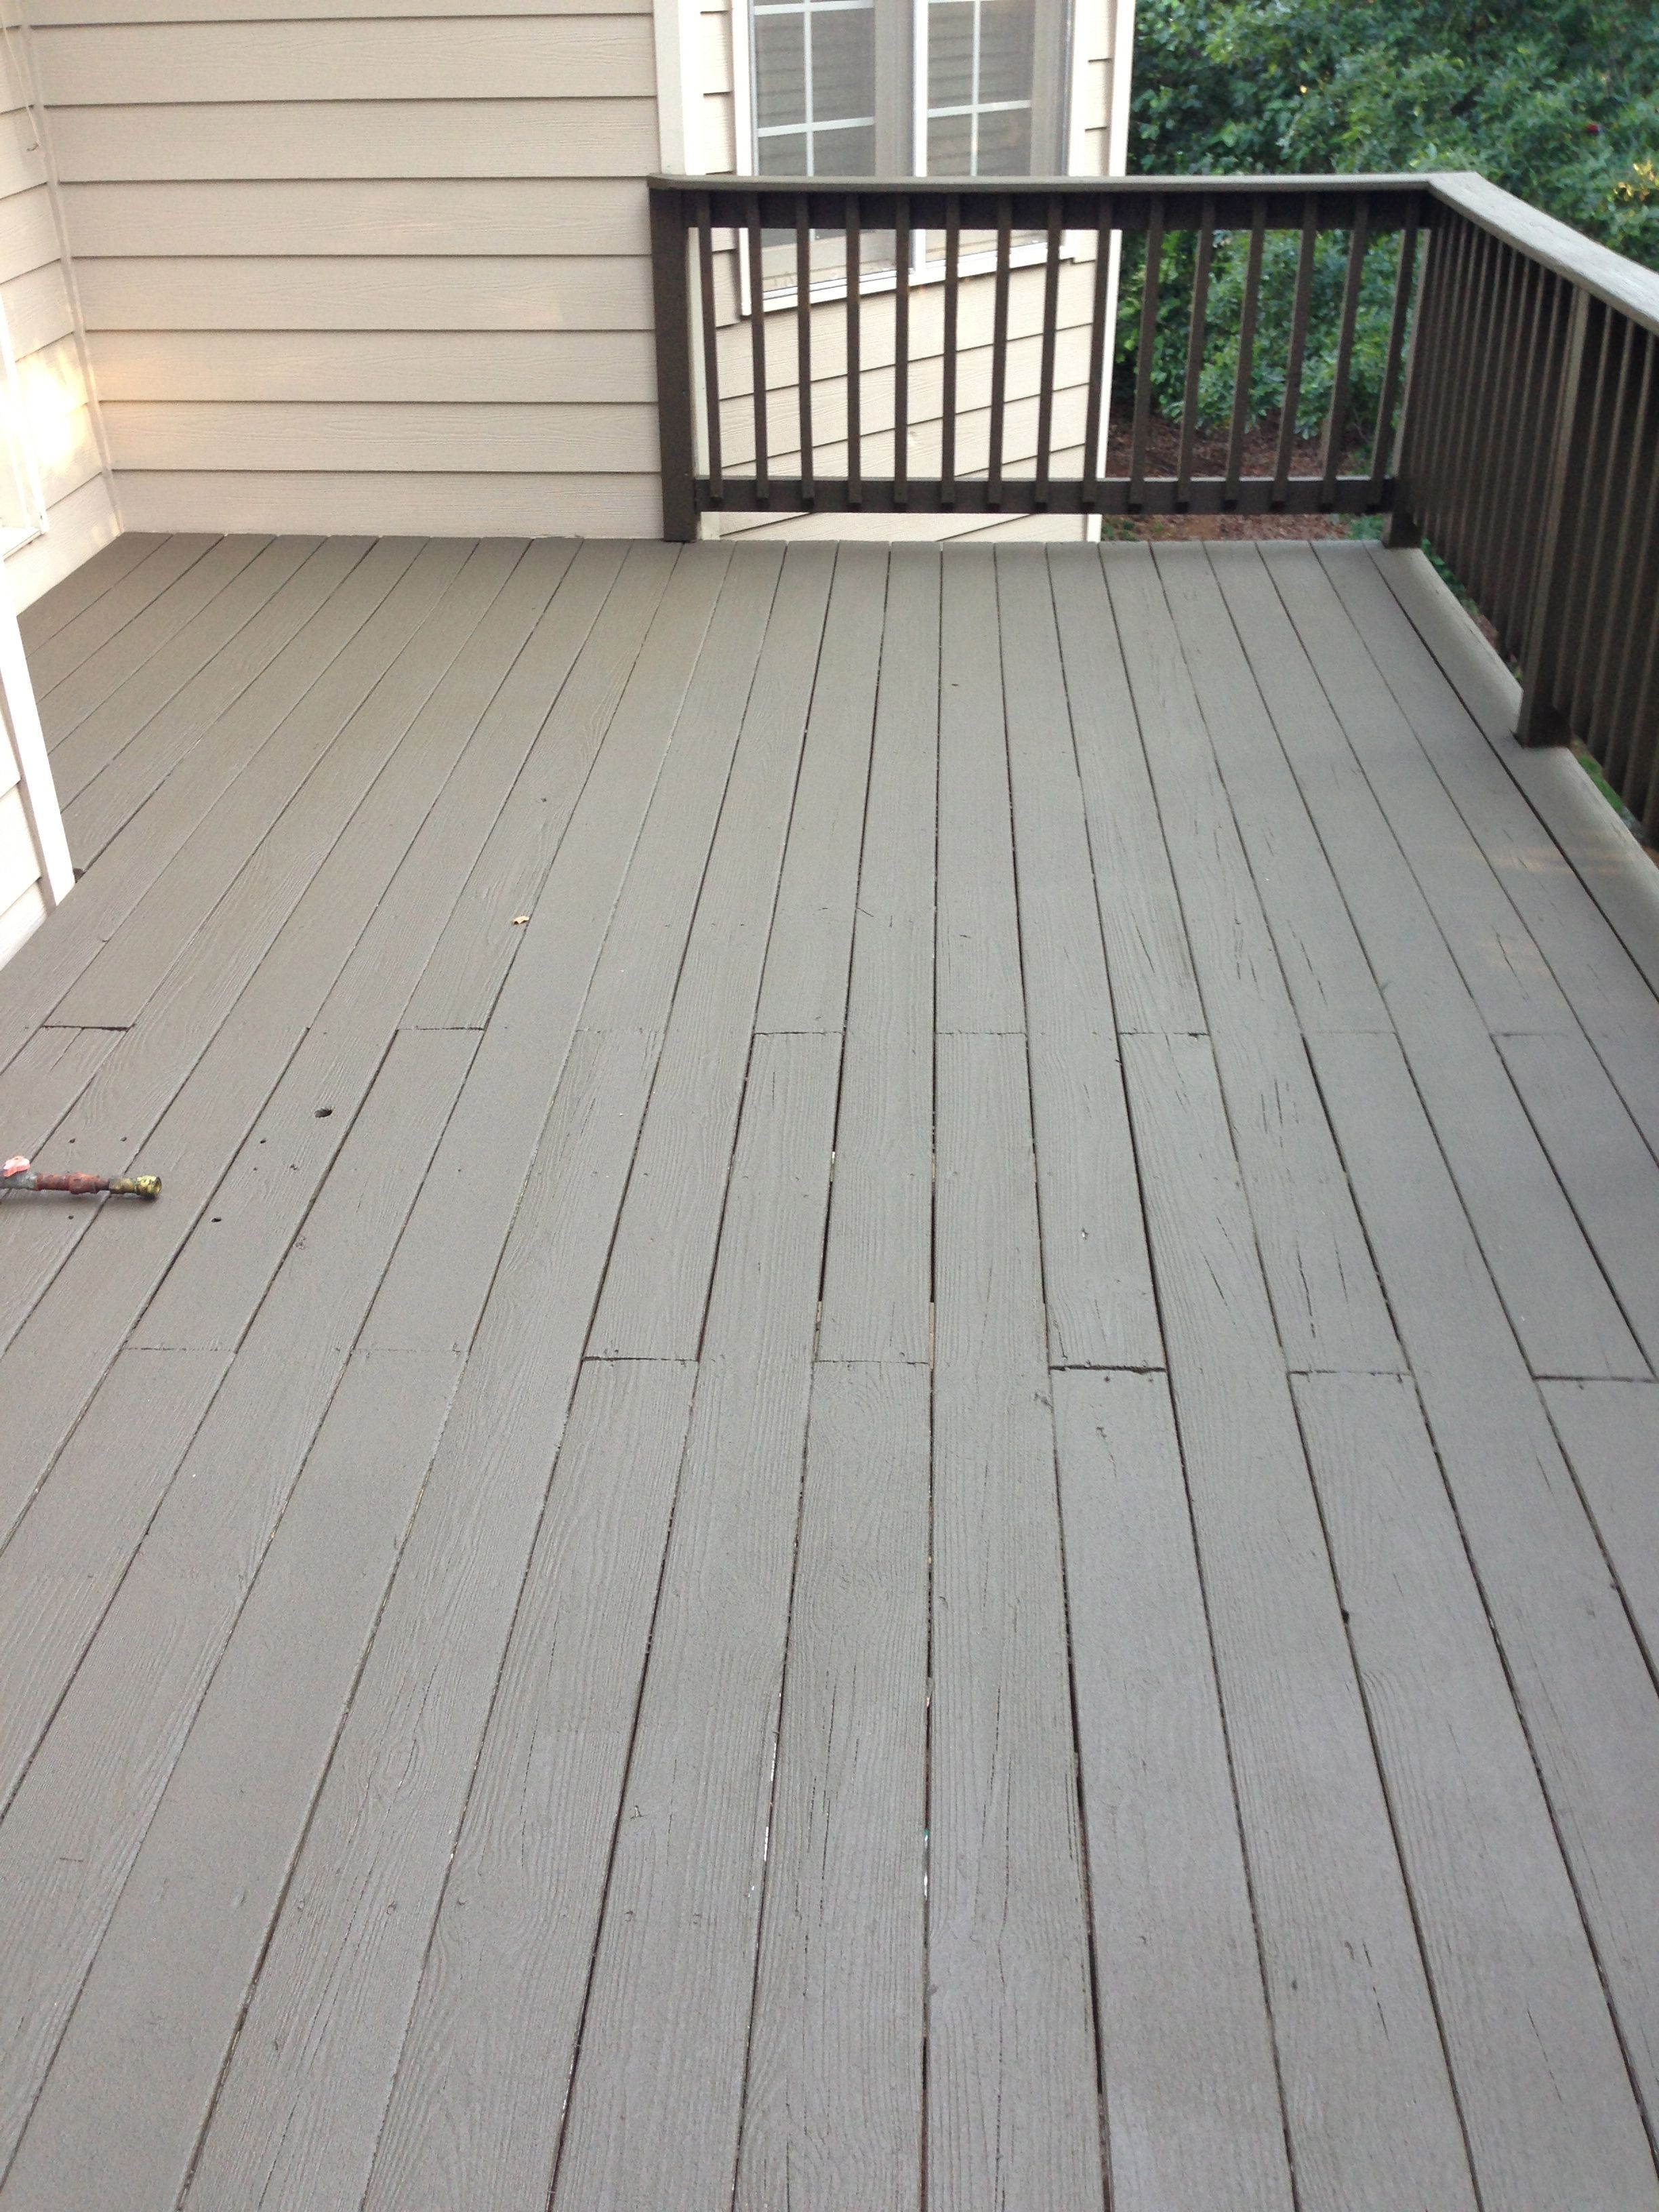 After photo sherwin williams deck revive fills cracks for Best deck paint for old wood